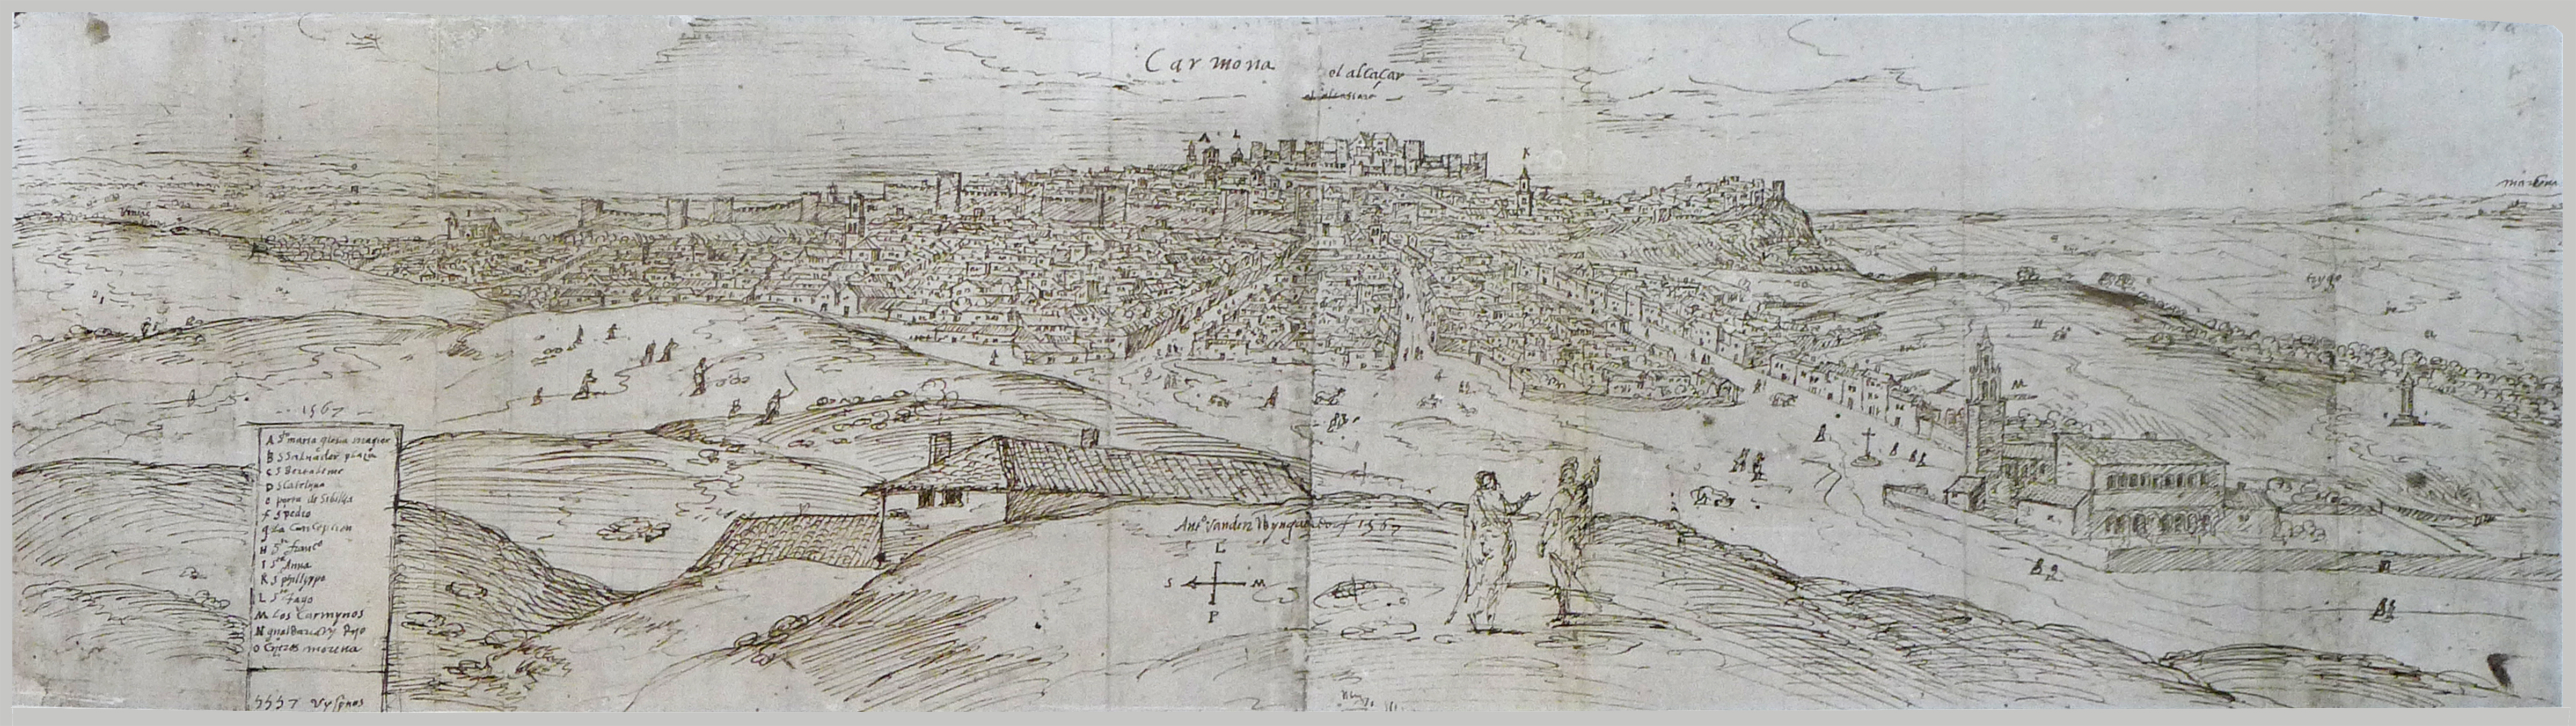 A Drawing of the Carmona Skyline by Anton van den Wyngaerde, 212 x 765 mm